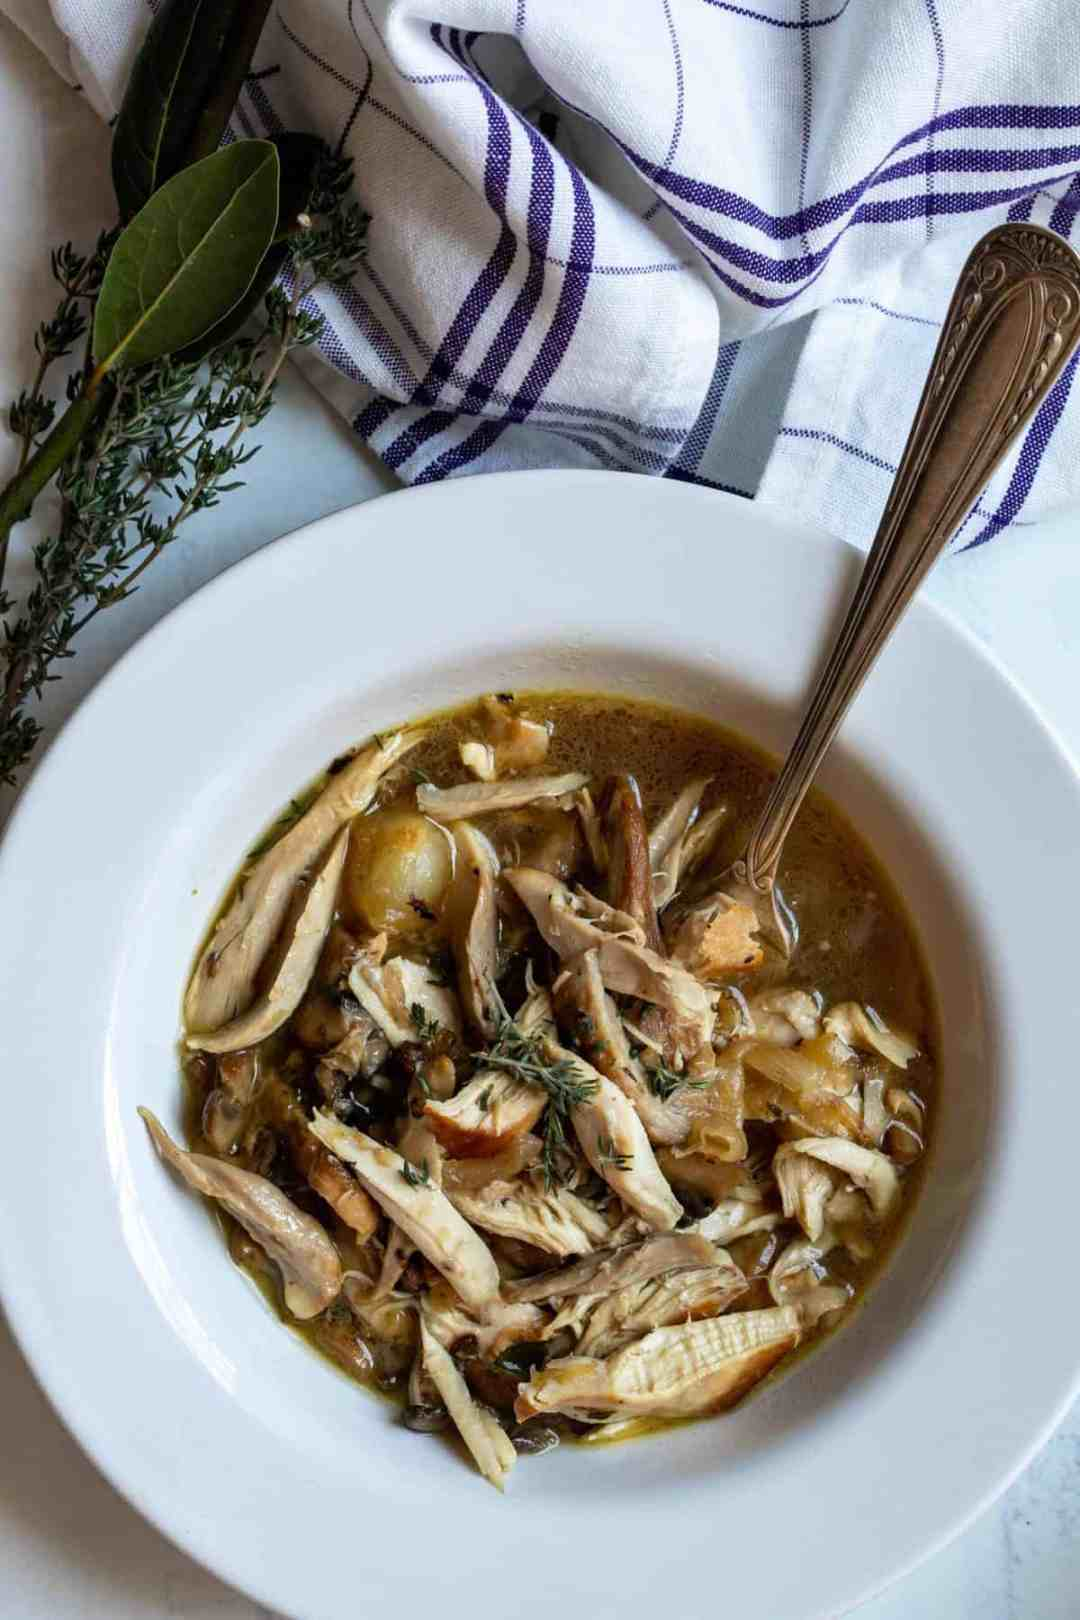 coq au vin blanc with towel and thyme sprig